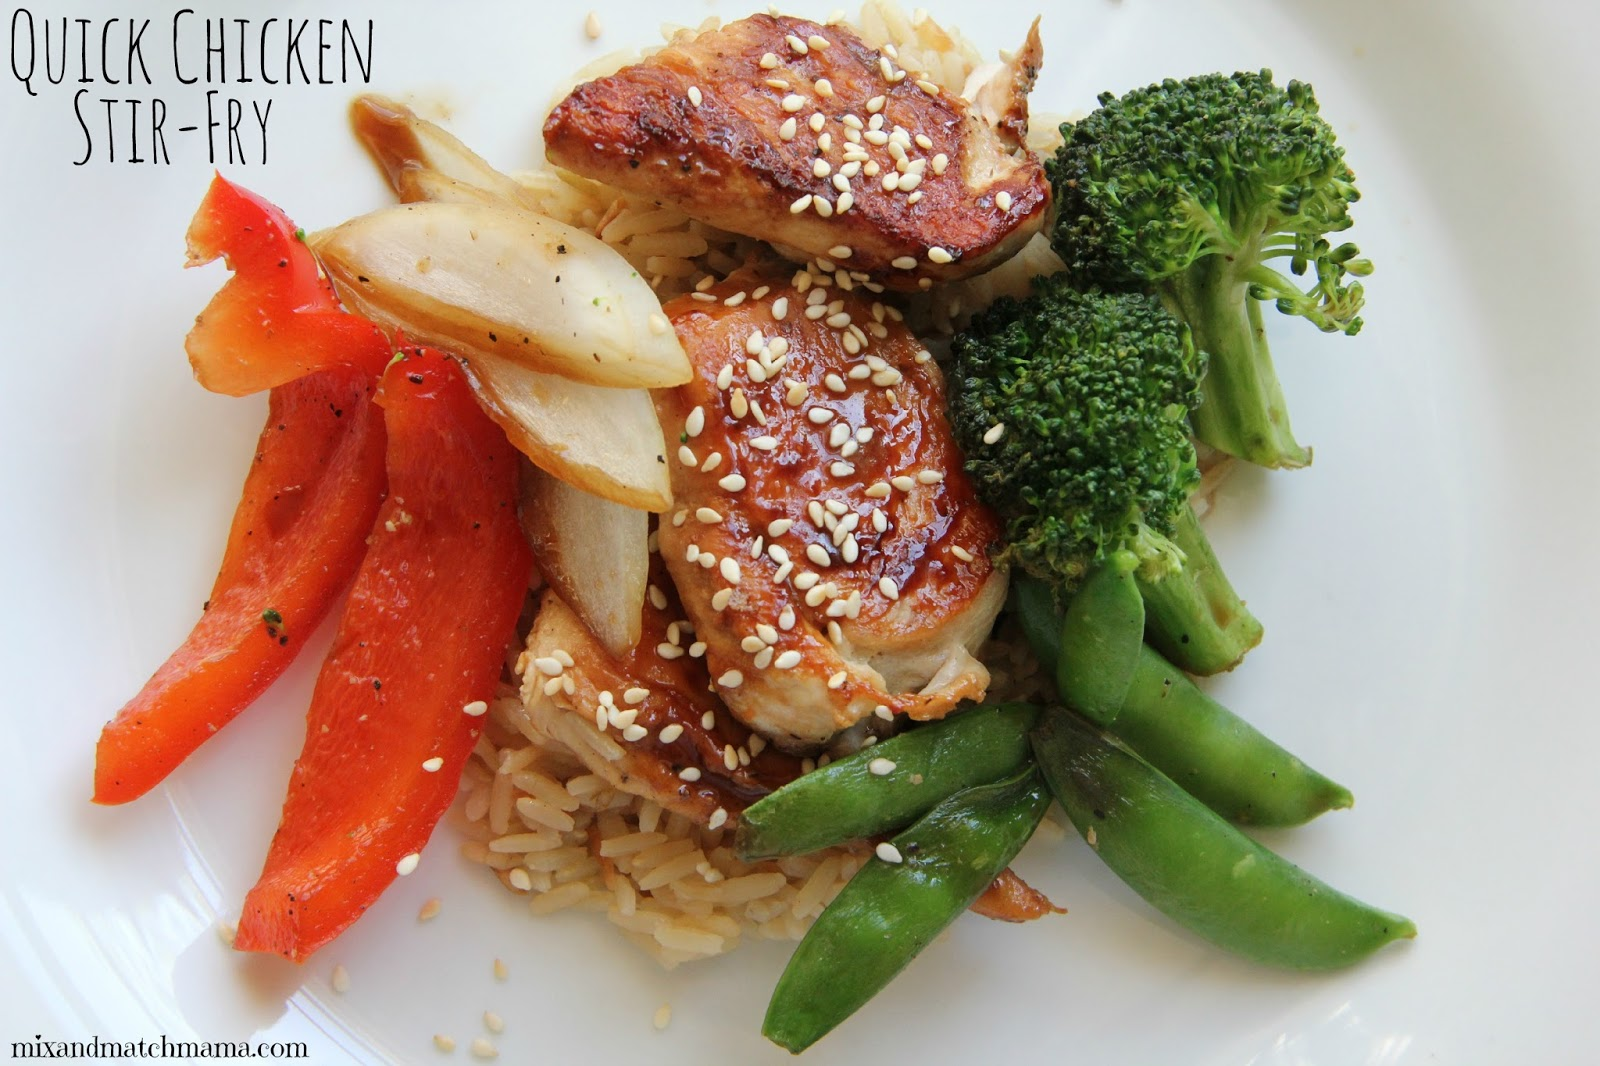 Mix and Match Mama: Dinner Tonight: Quick Chicken Stir Fry